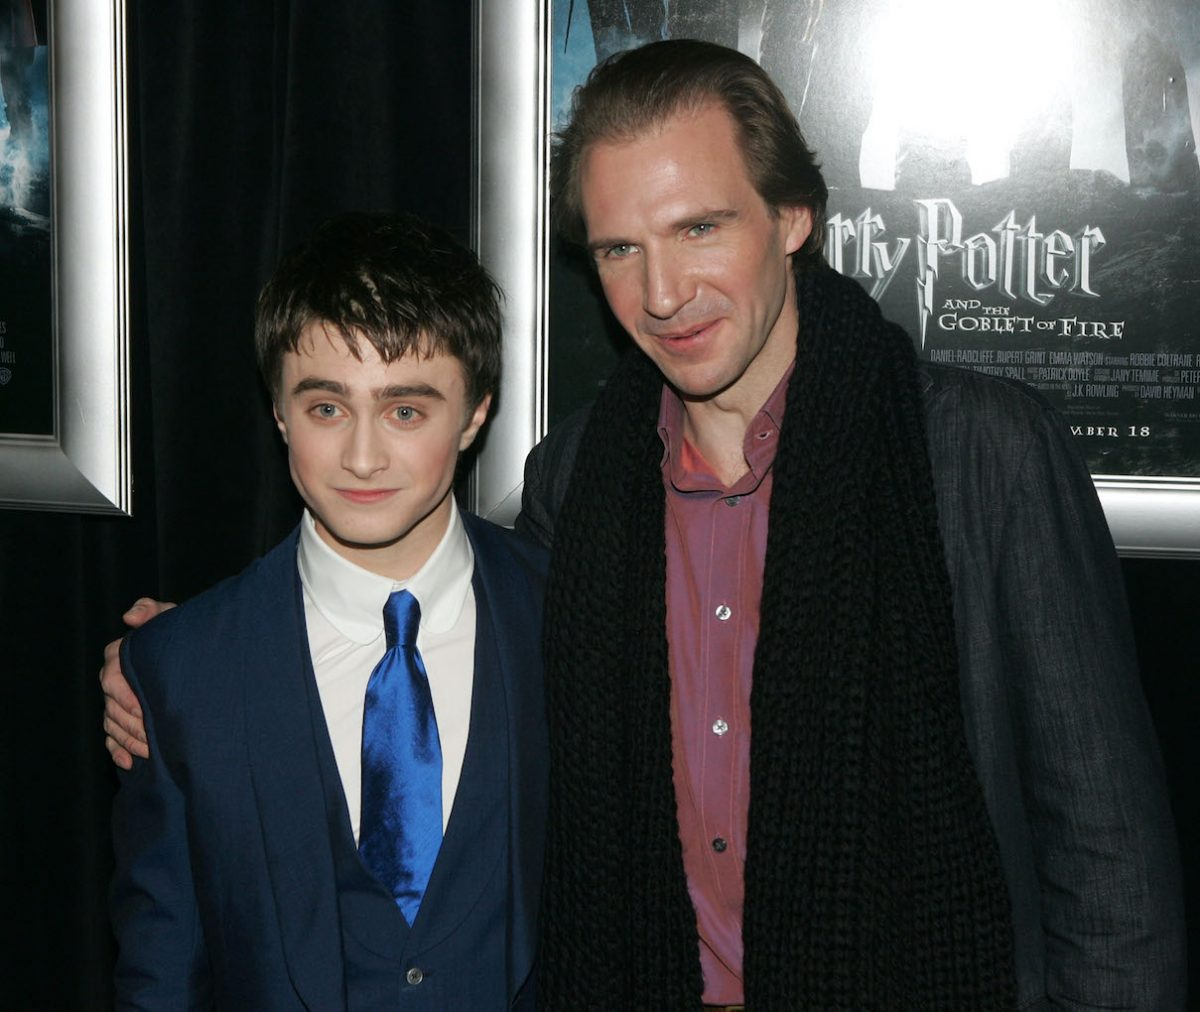 Daniel Radcliffe and Ralph Fiennes at the premiere of 'Harry Potter and the Goblet of Fire'